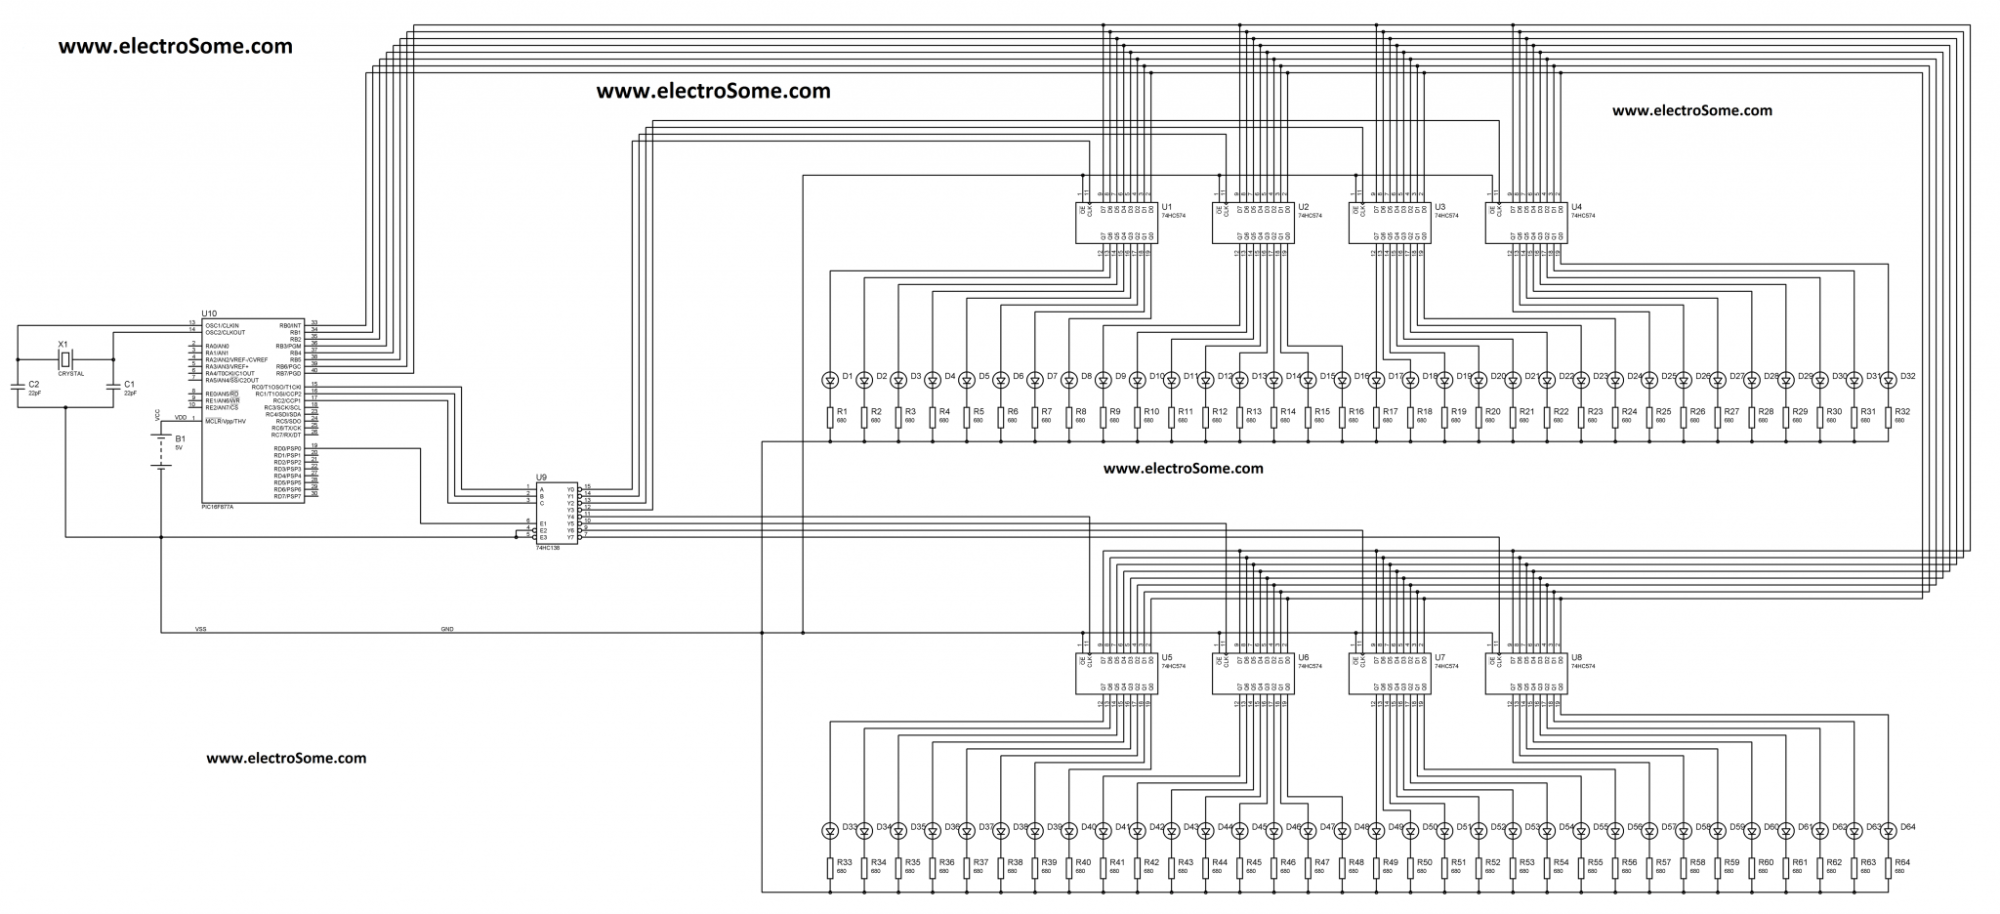 hight resolution of circuit diagram expanding output pins of a pic microcontroller through multiplexing